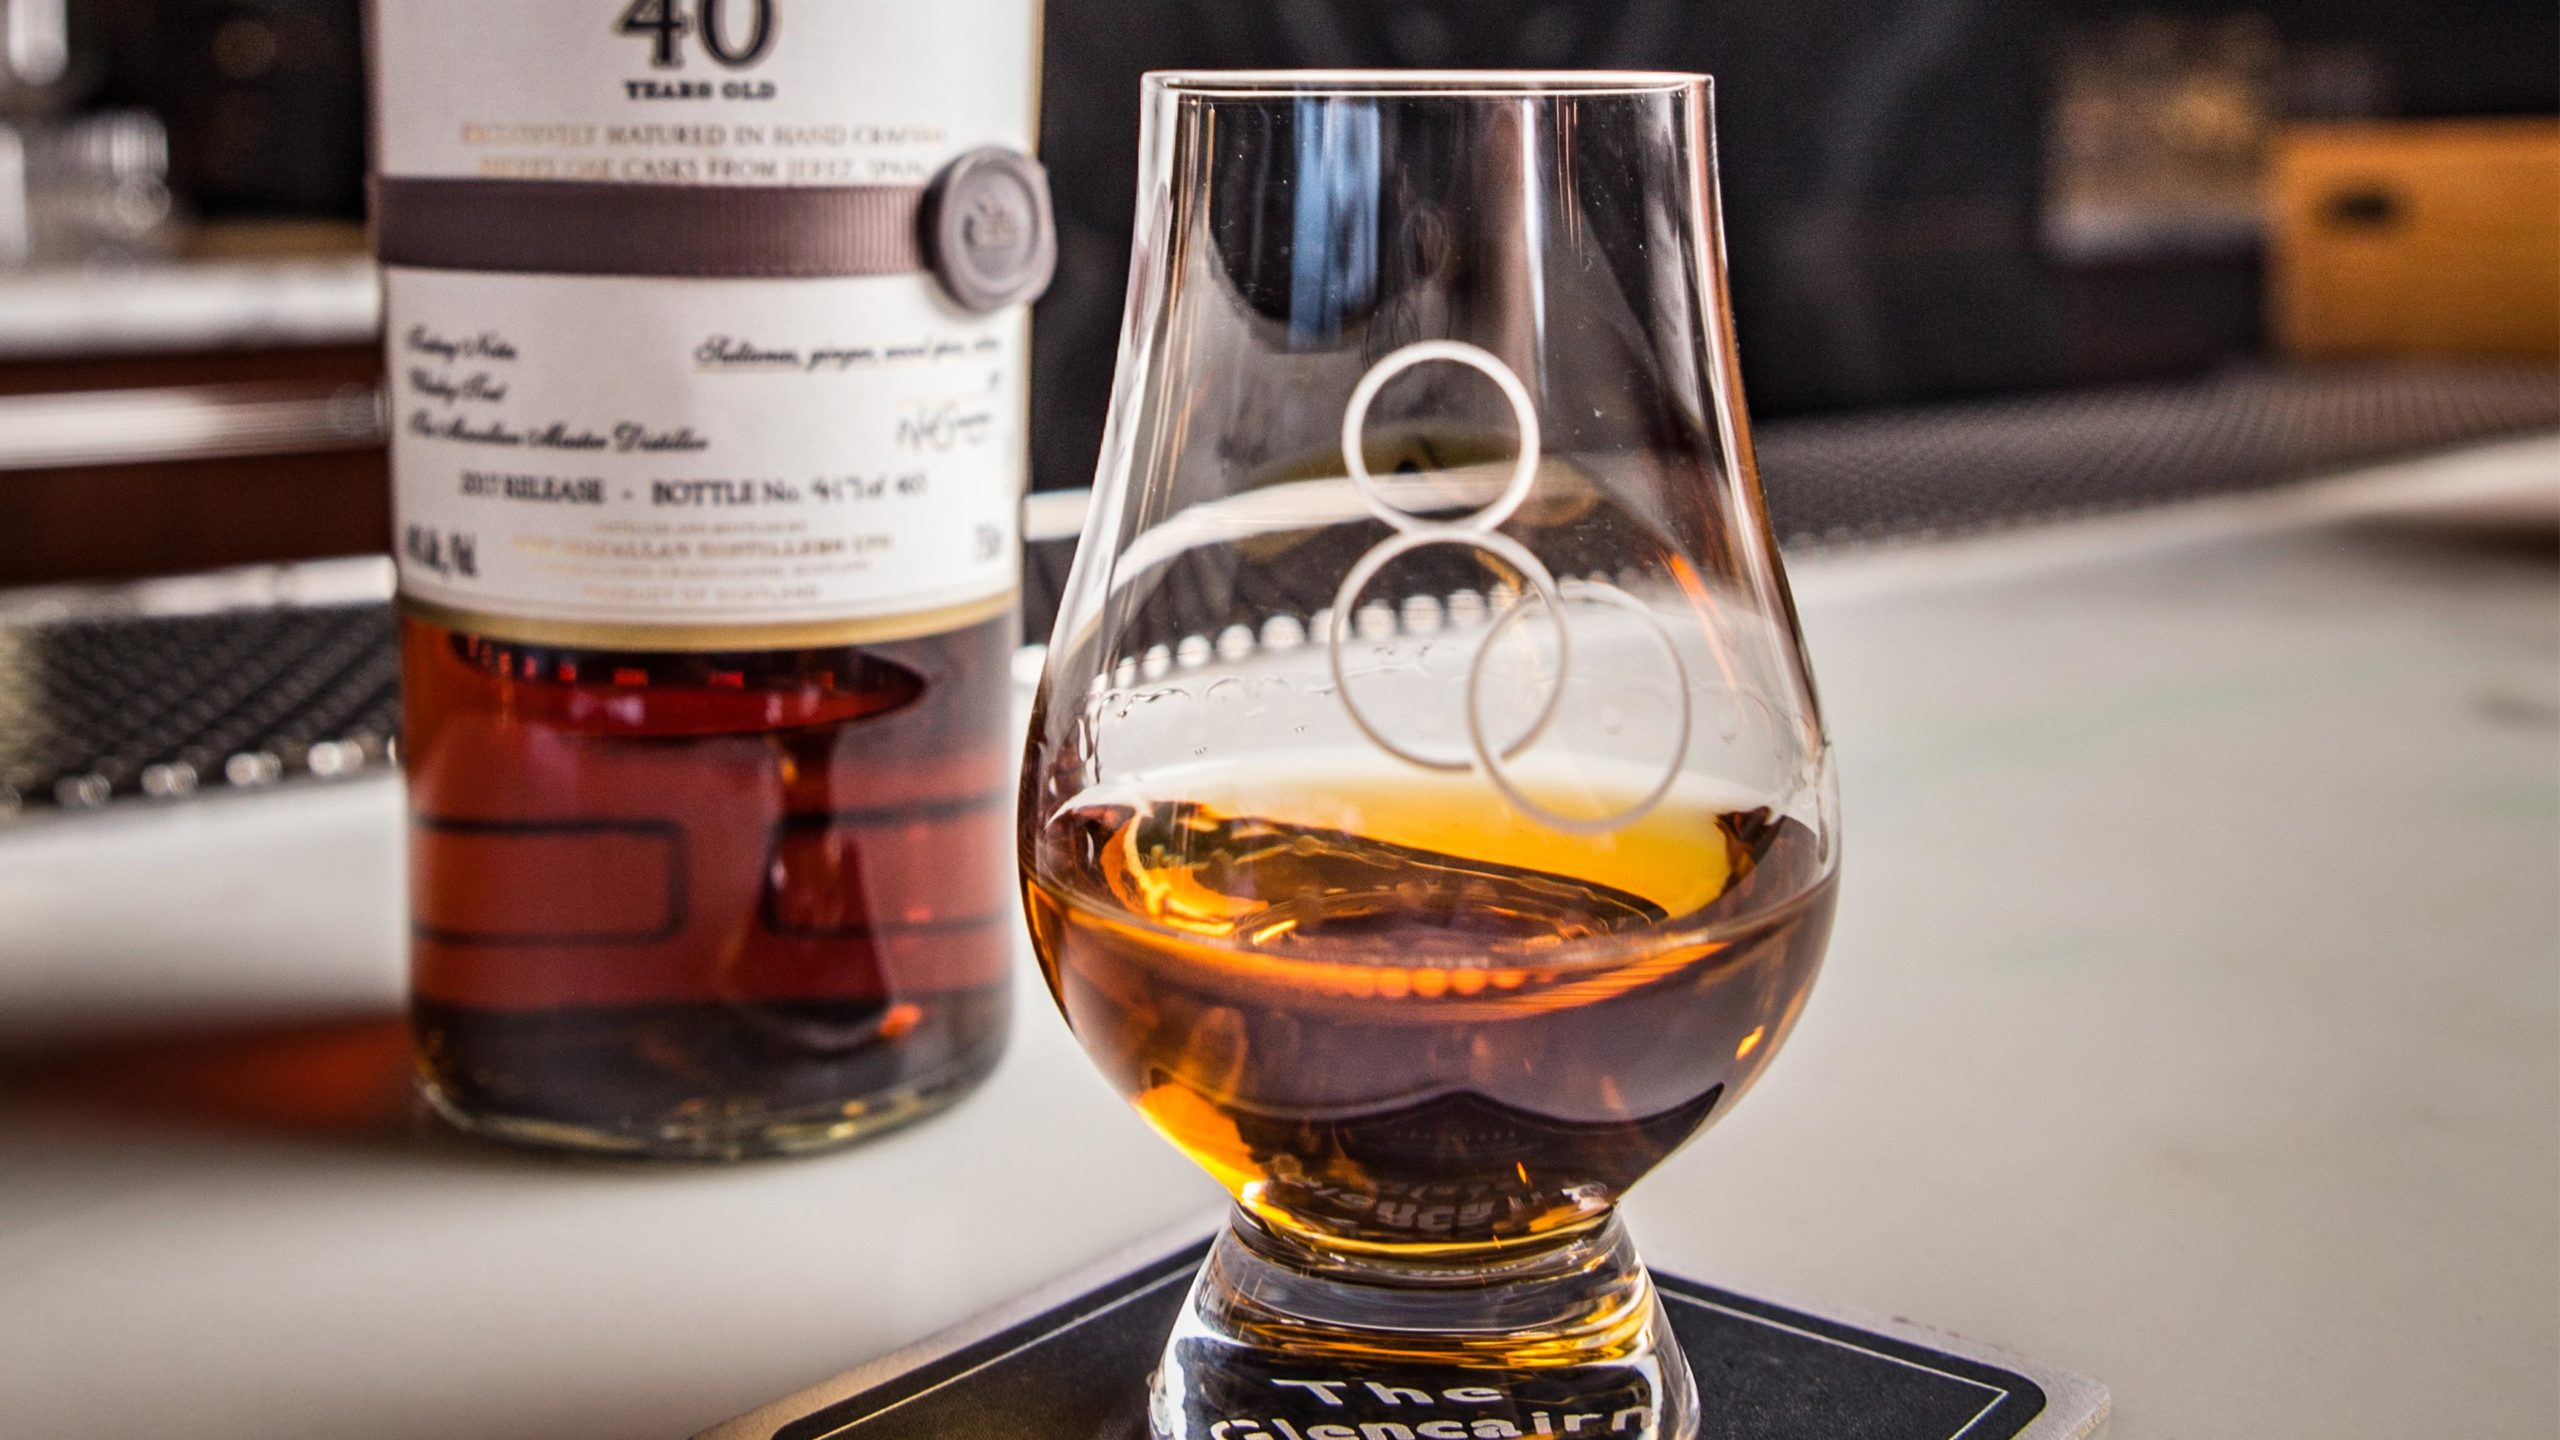 A photo of whisky in a scotch 80 glass